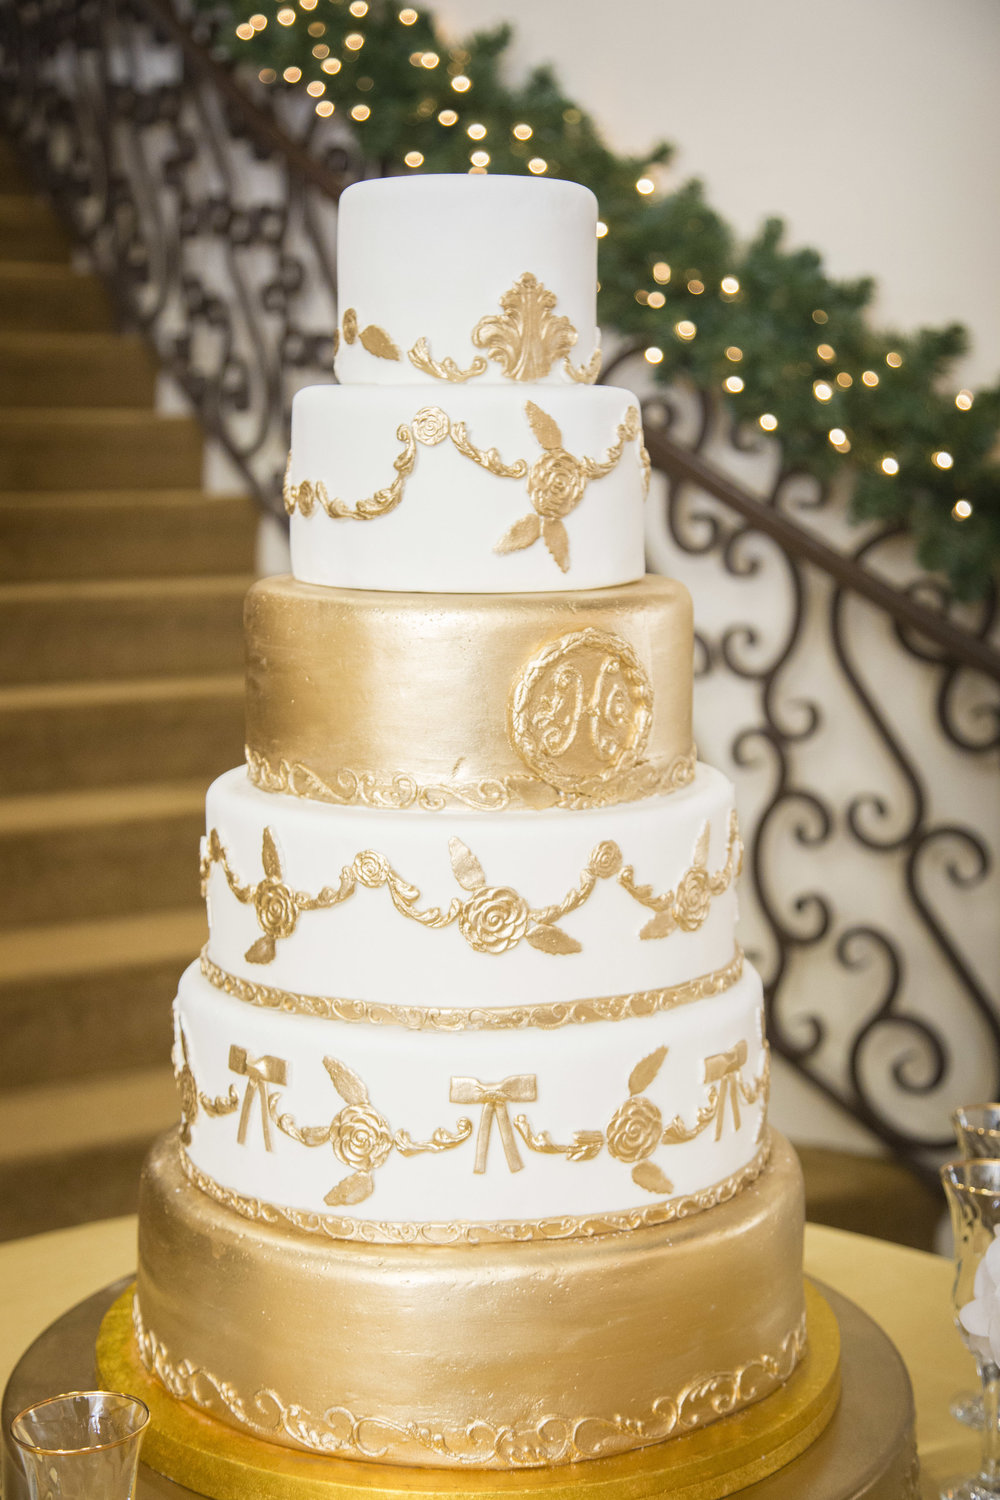 White and Gold Tiered Wedding Cake | Edible Art Bakery of Raleigh